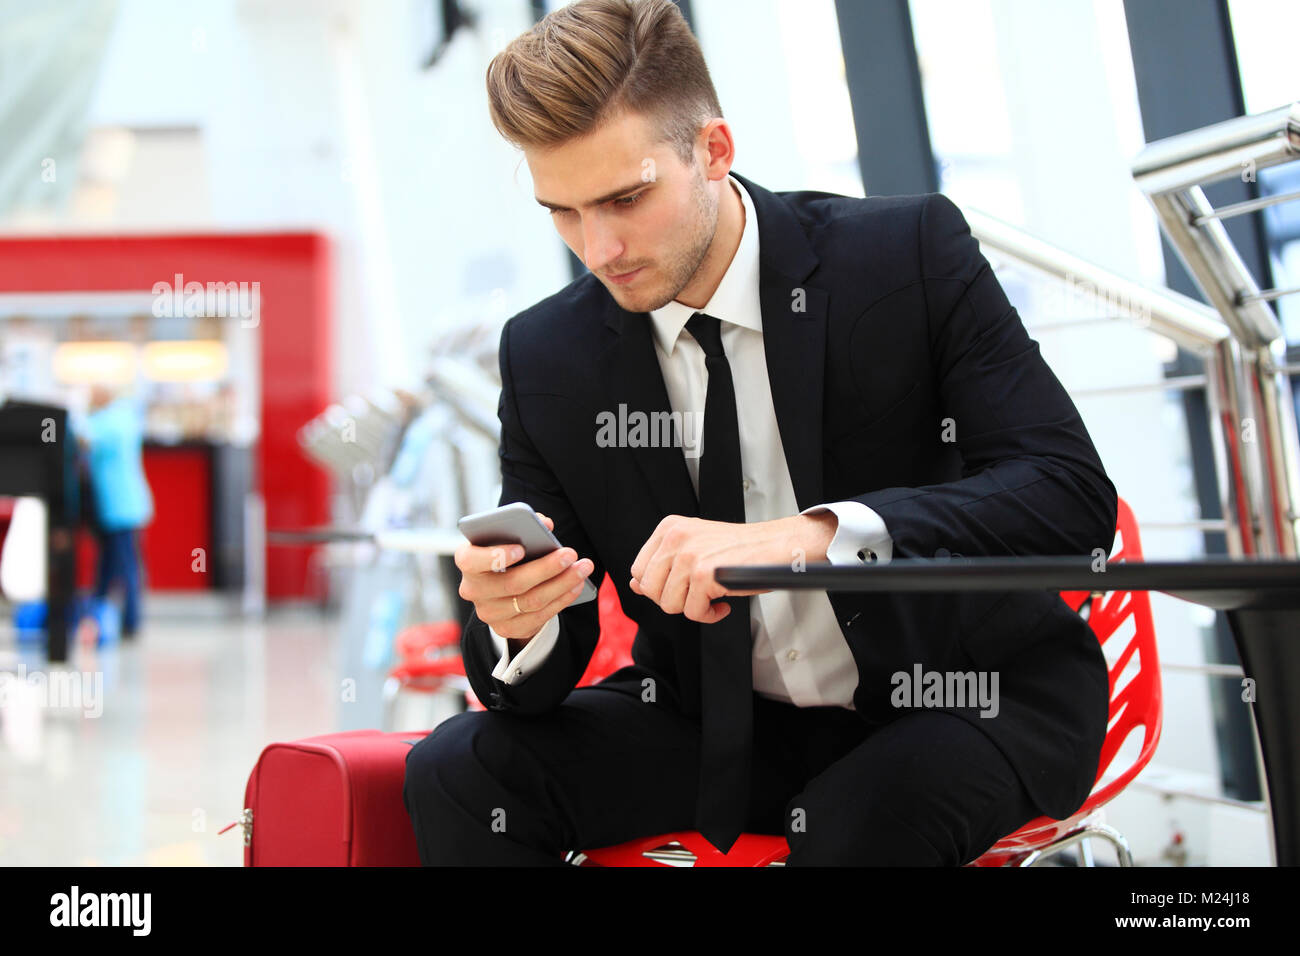 Young attractive business man using smartphone - Stock Image